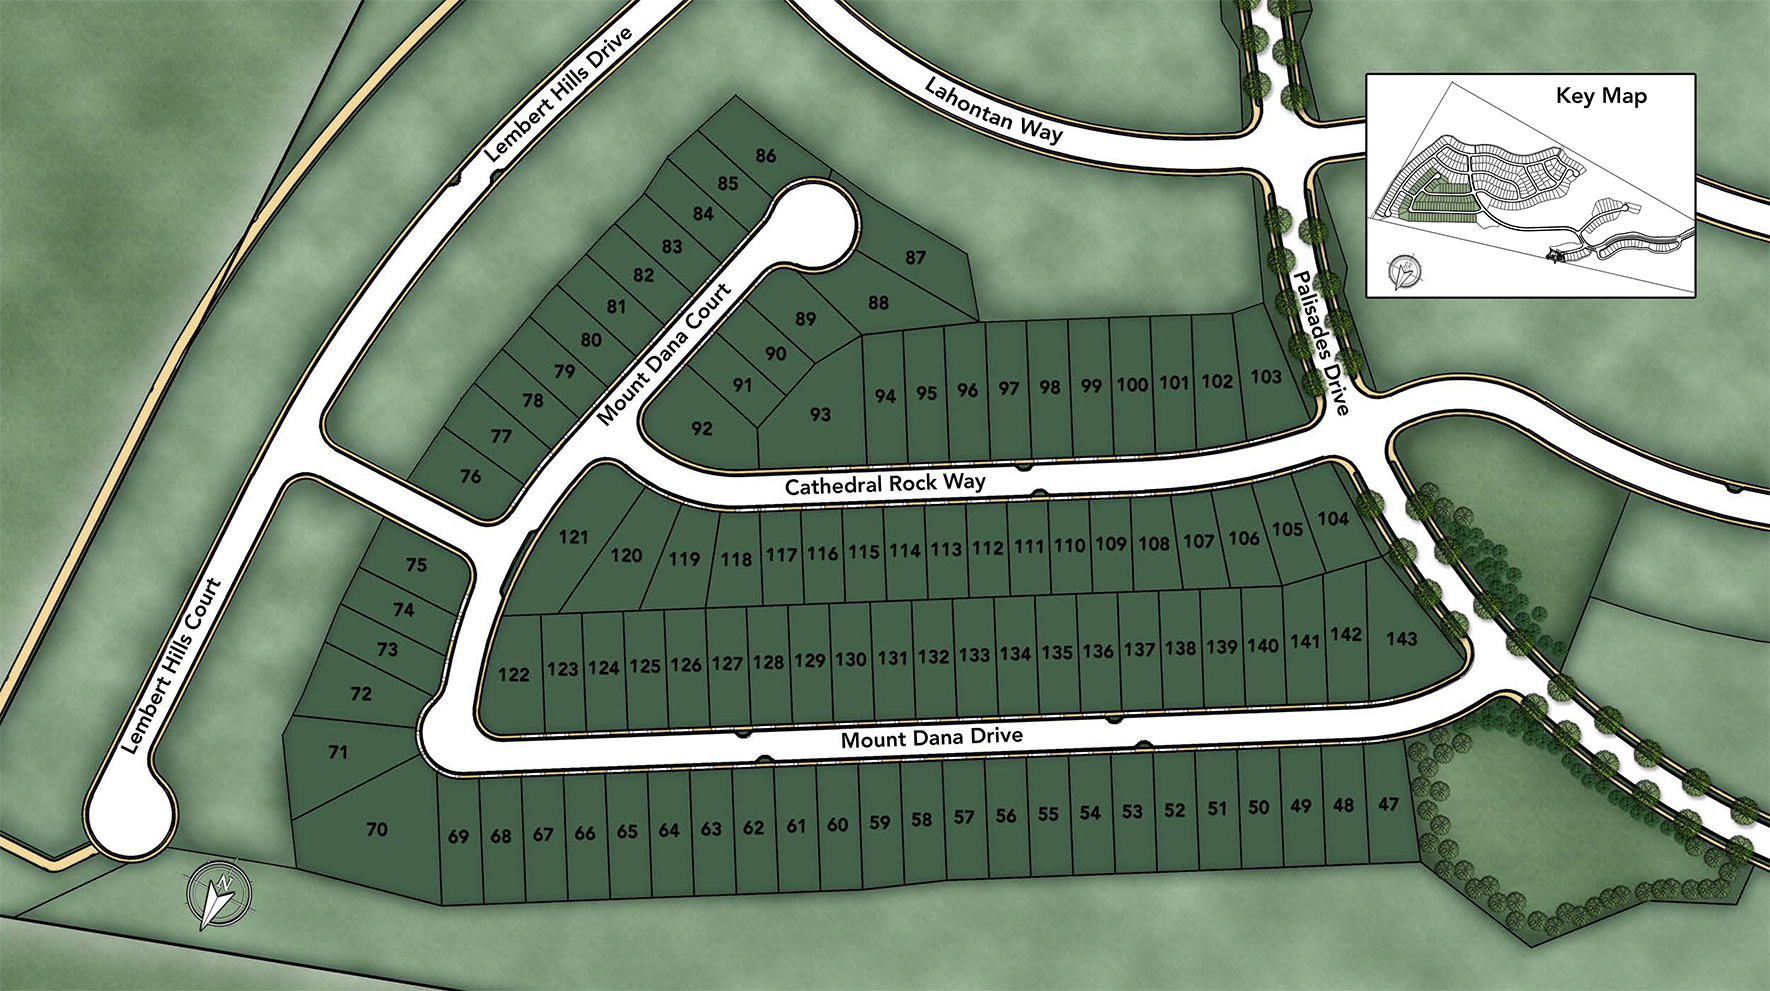 The Glen at Tassajara Hills Site Plan I